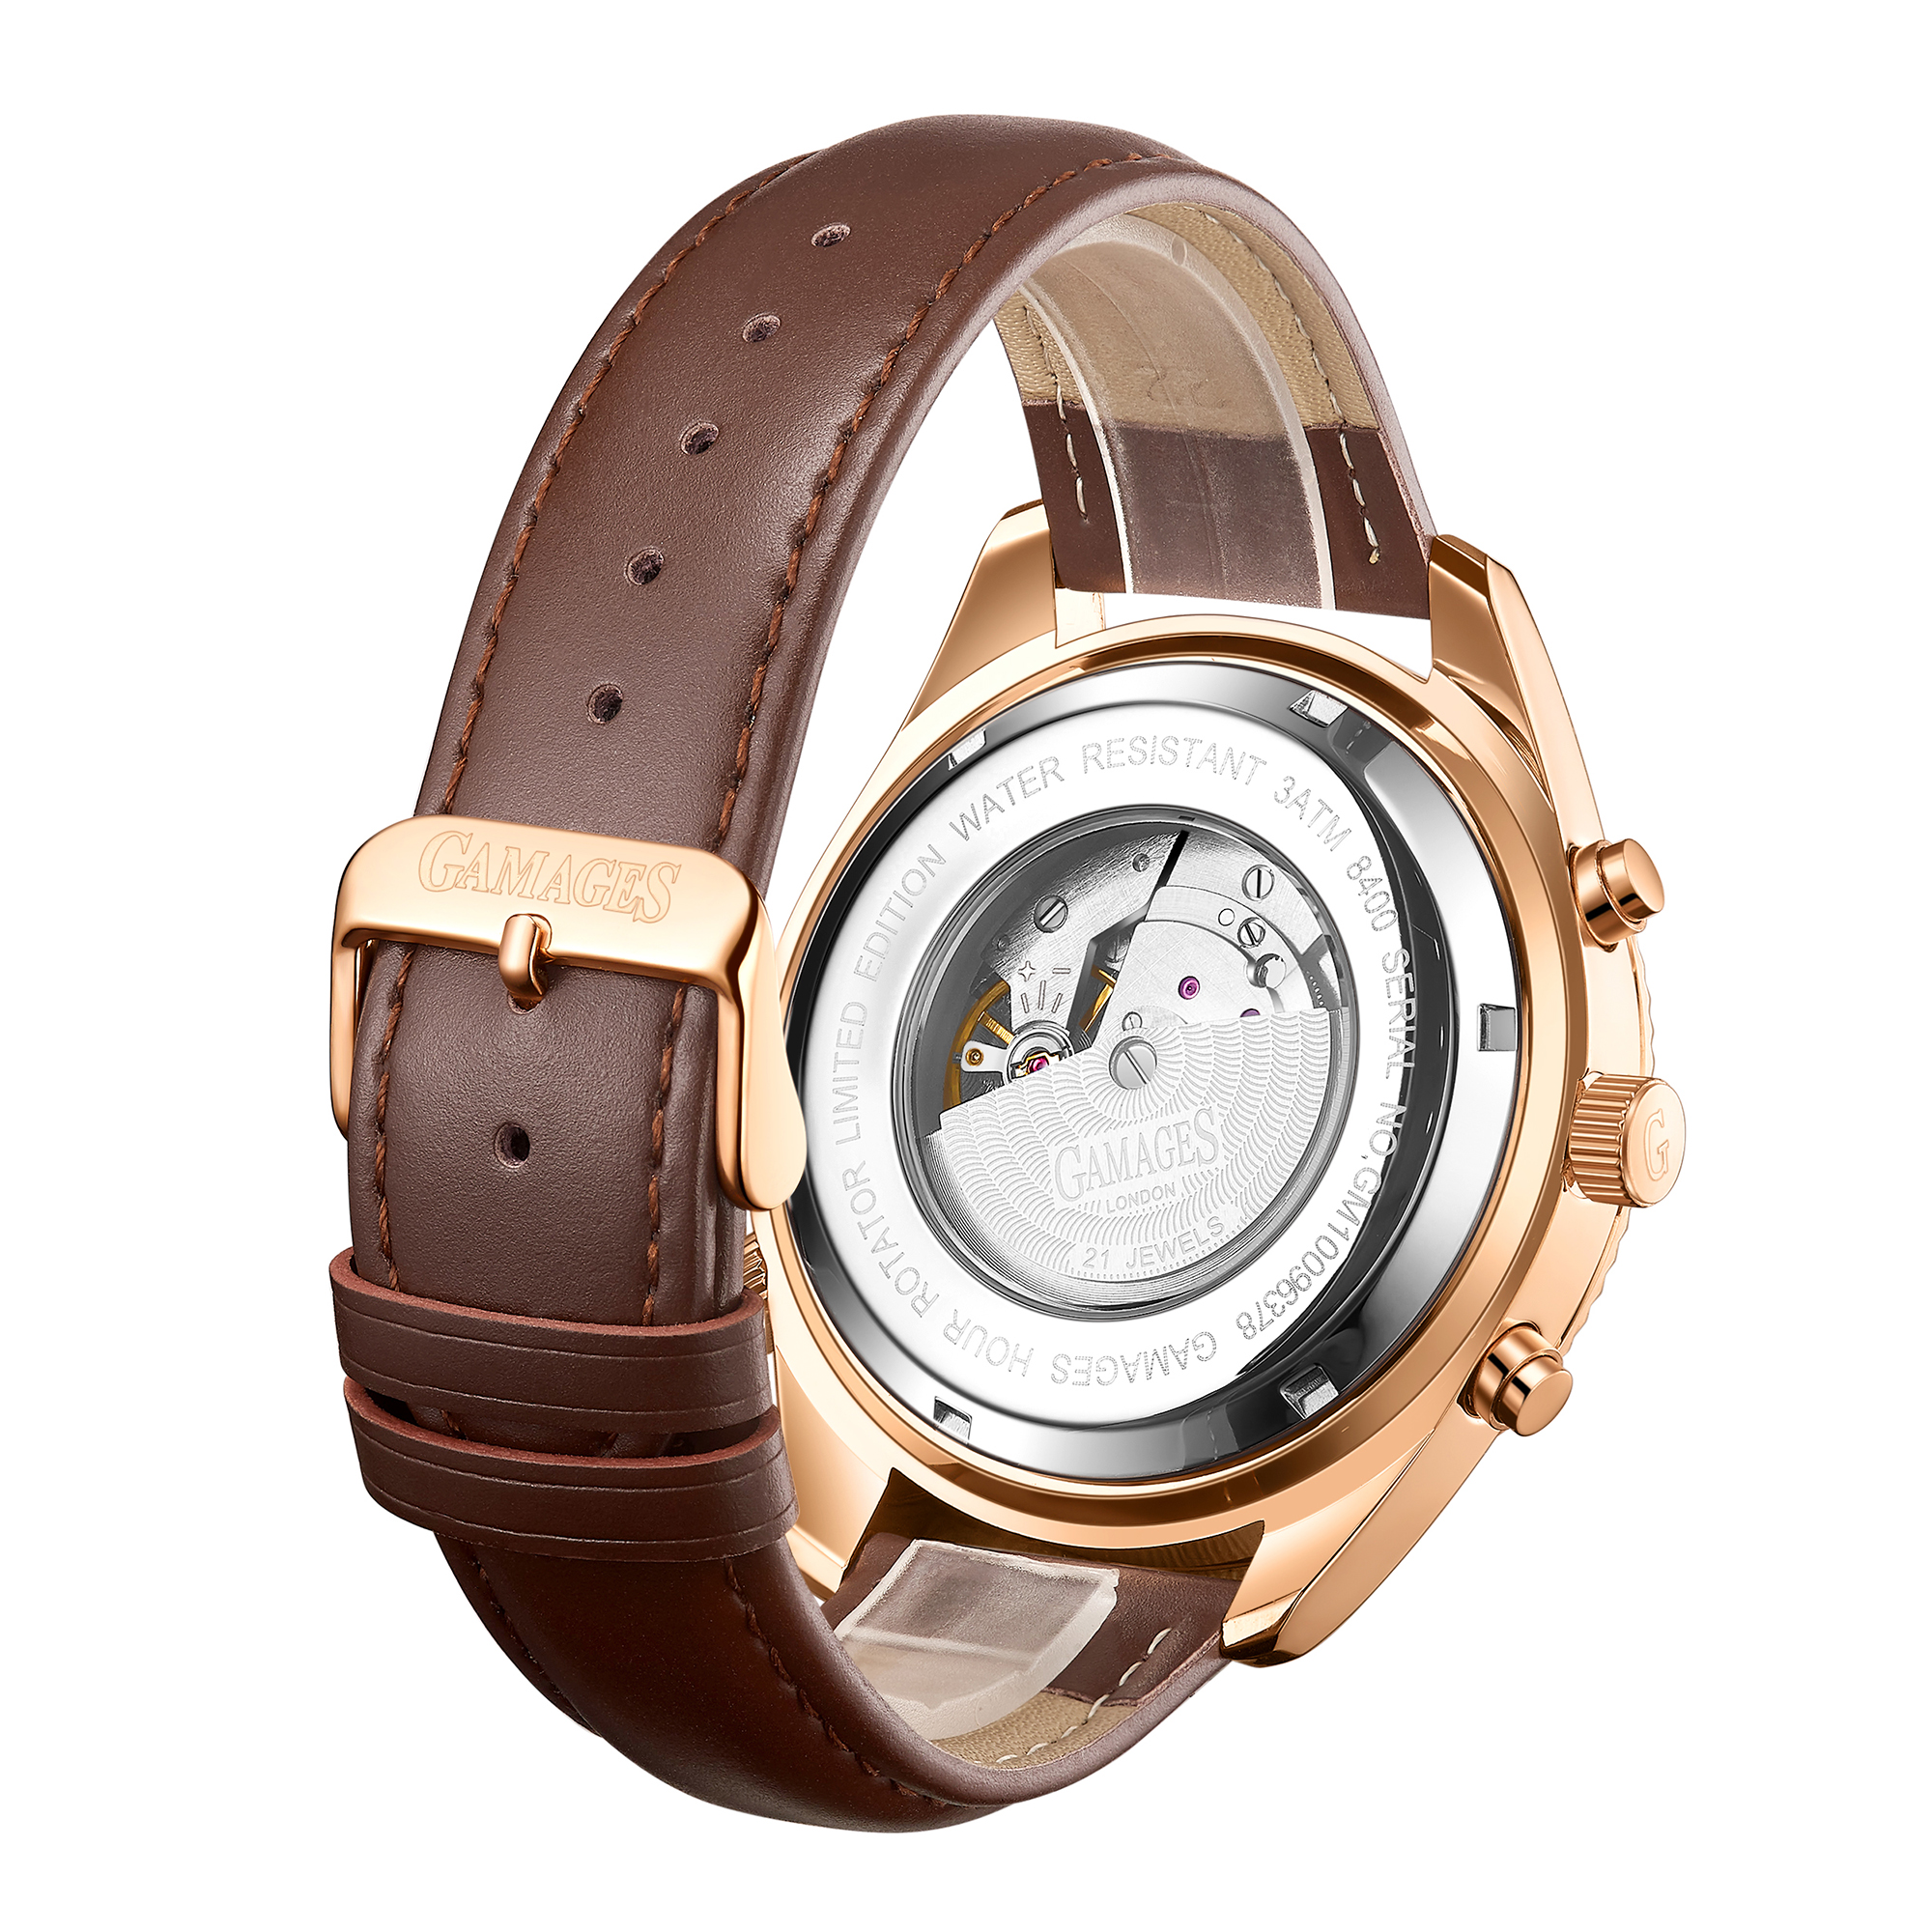 Limited Edition Hand Assembled GAMAGES Hour Rotator Automatic Rose – 5 Year Warranty & Free Delivery - Image 4 of 5